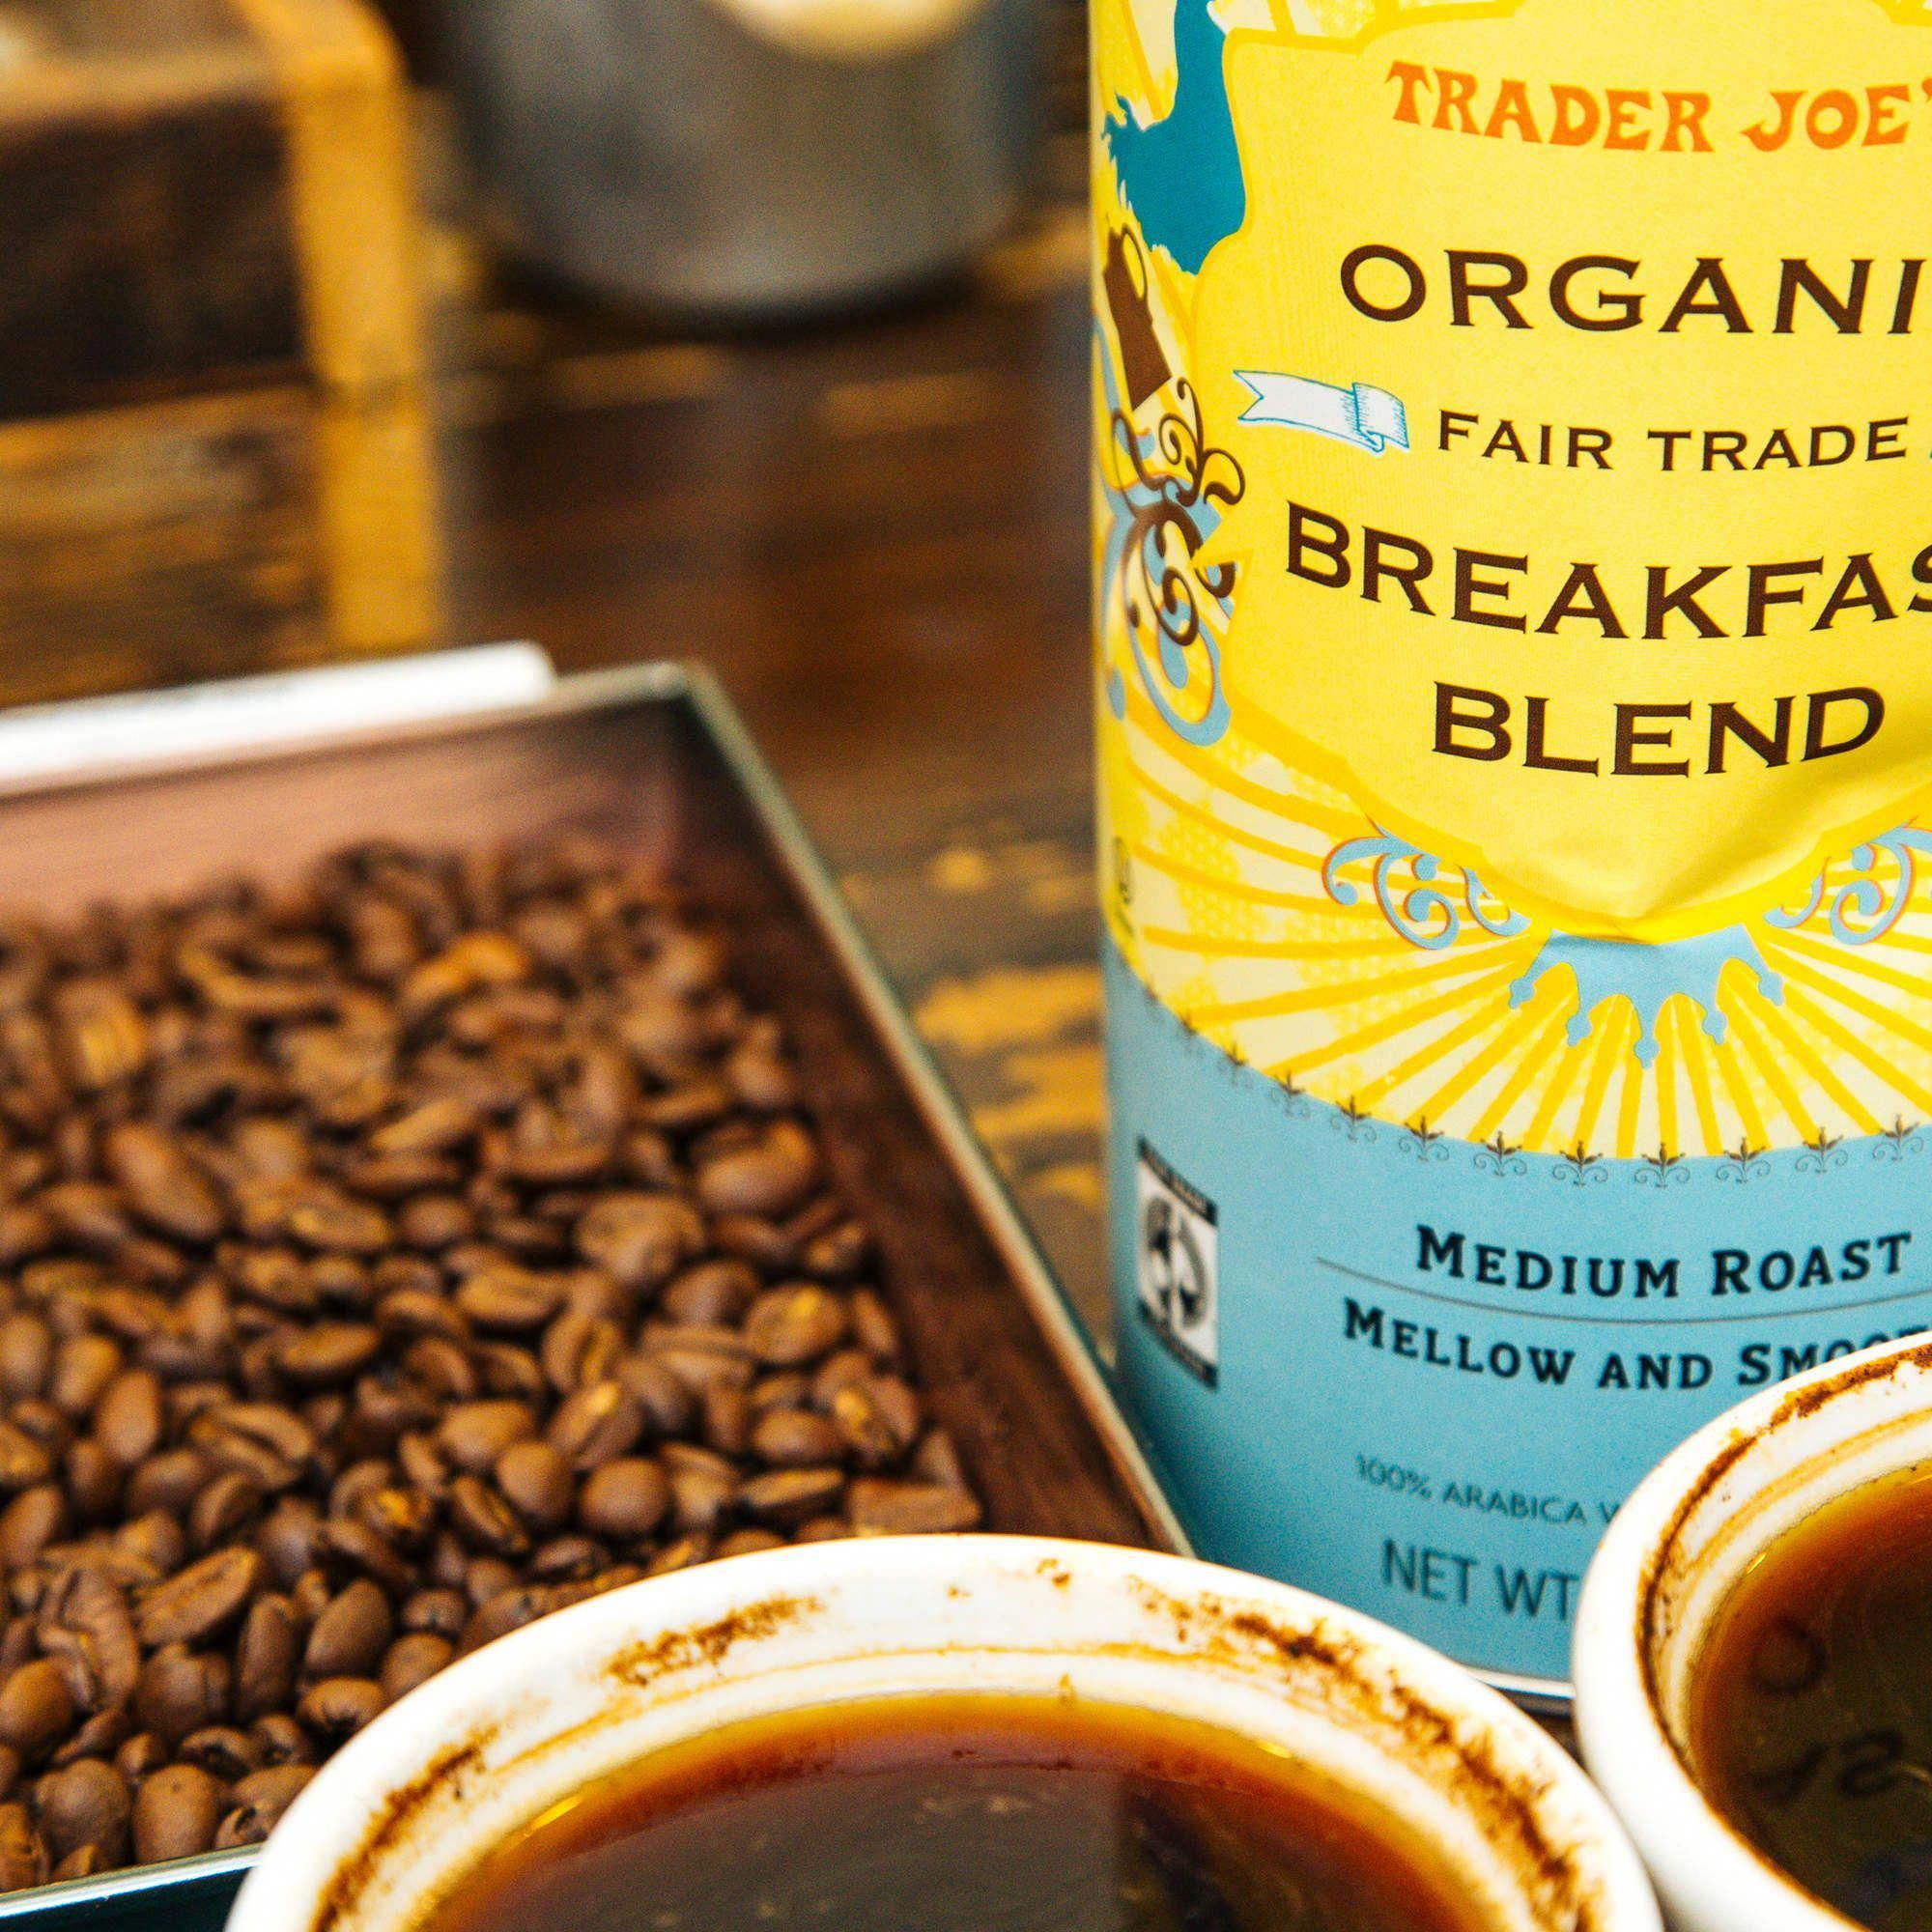 The 9 best trader joes coffees ranked